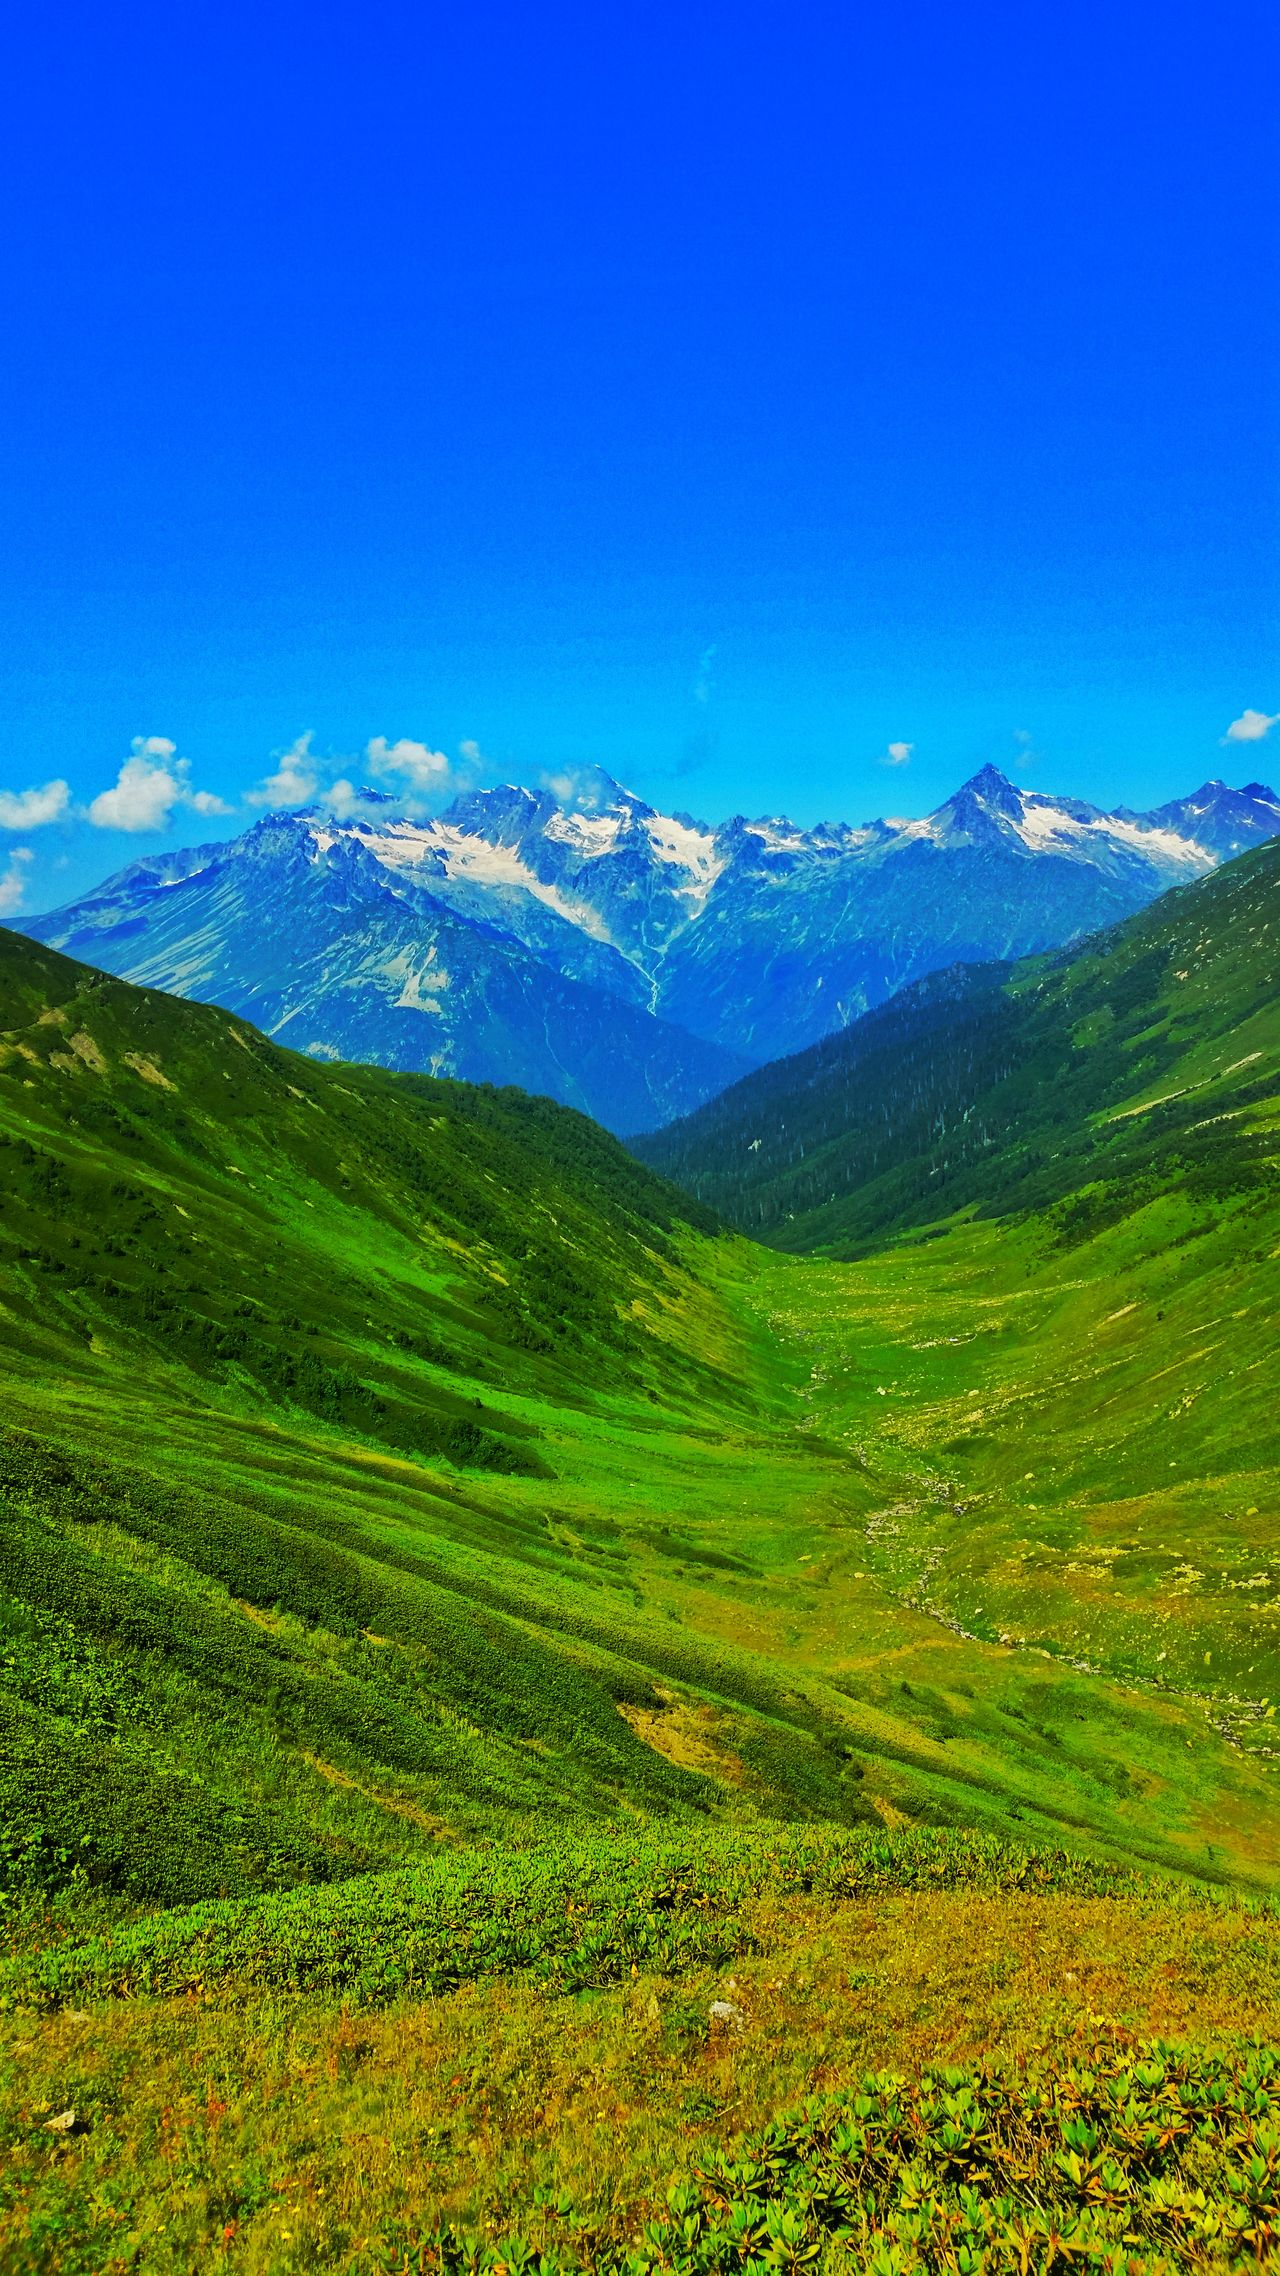 Mountain Scenics Green Color Mountain Range Nature No People Beauty In Nature Landscape Freshness Day Pinaceae Tranquility Travel Destinations Outdoors Grass Sky Clear Sky Beauty In Nature Nature Green Color Grass